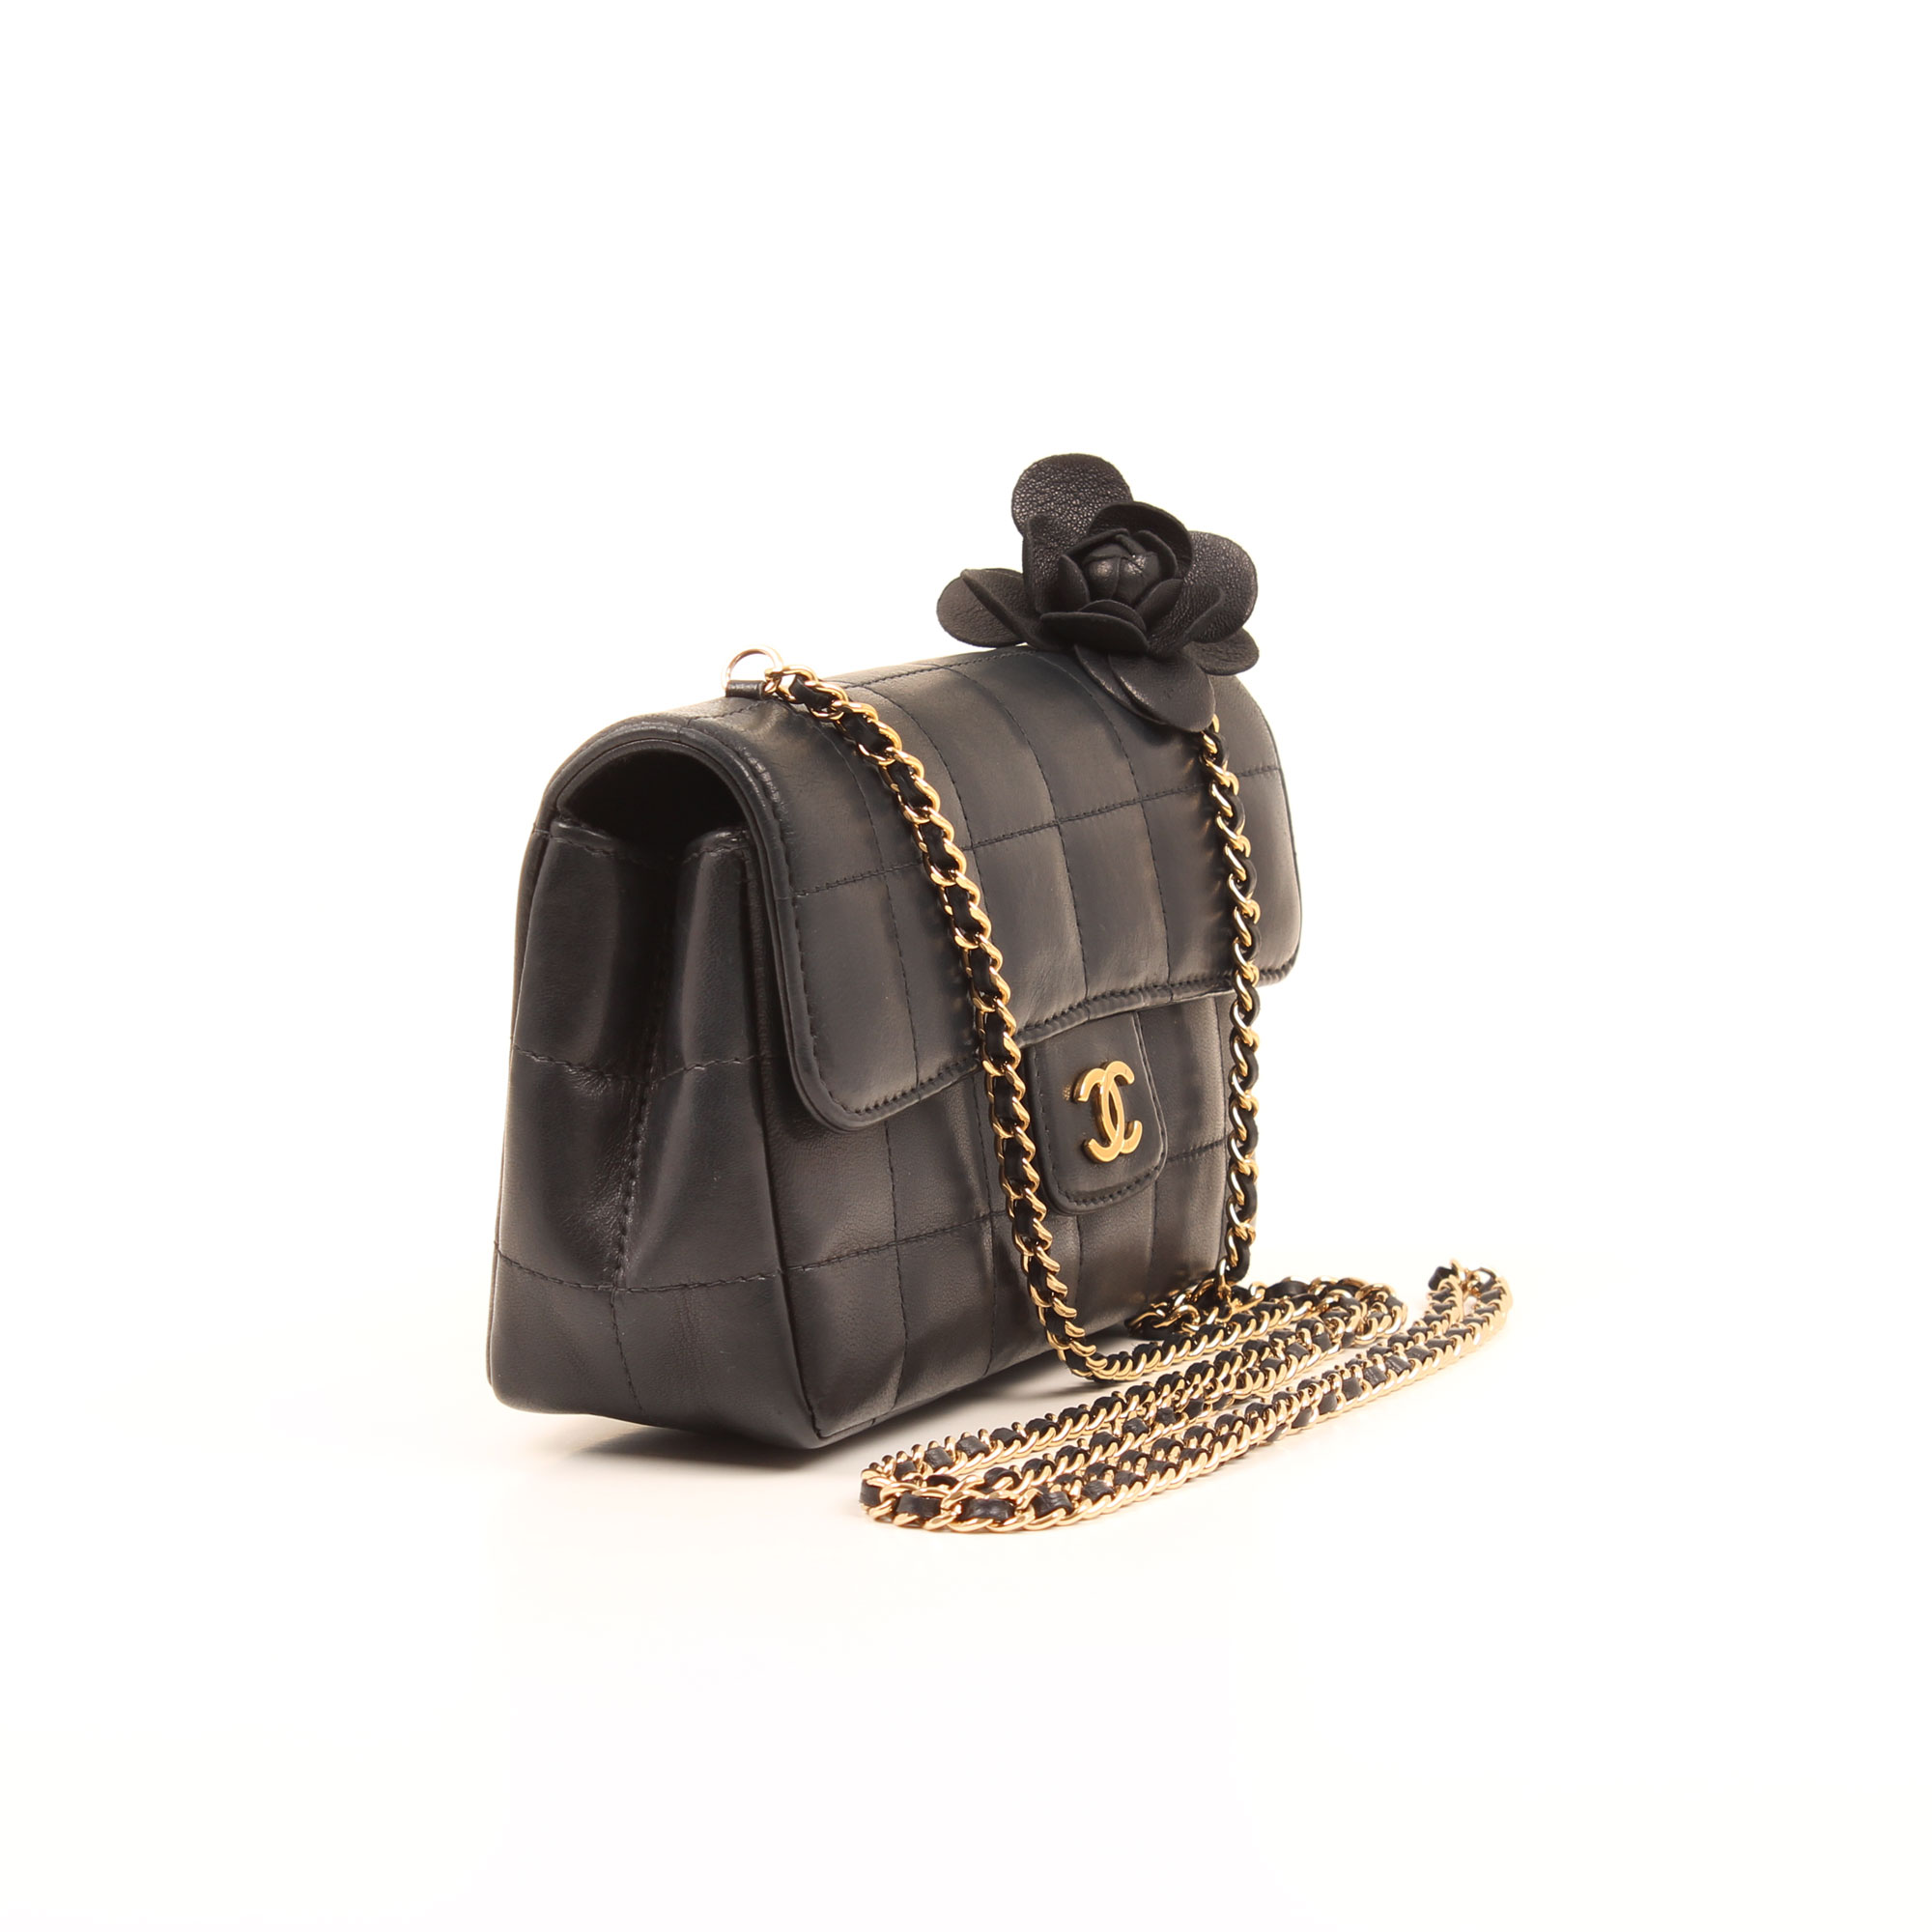 Imagen general del bolso chanel mini crossbody chocolate bar navy blue camelia